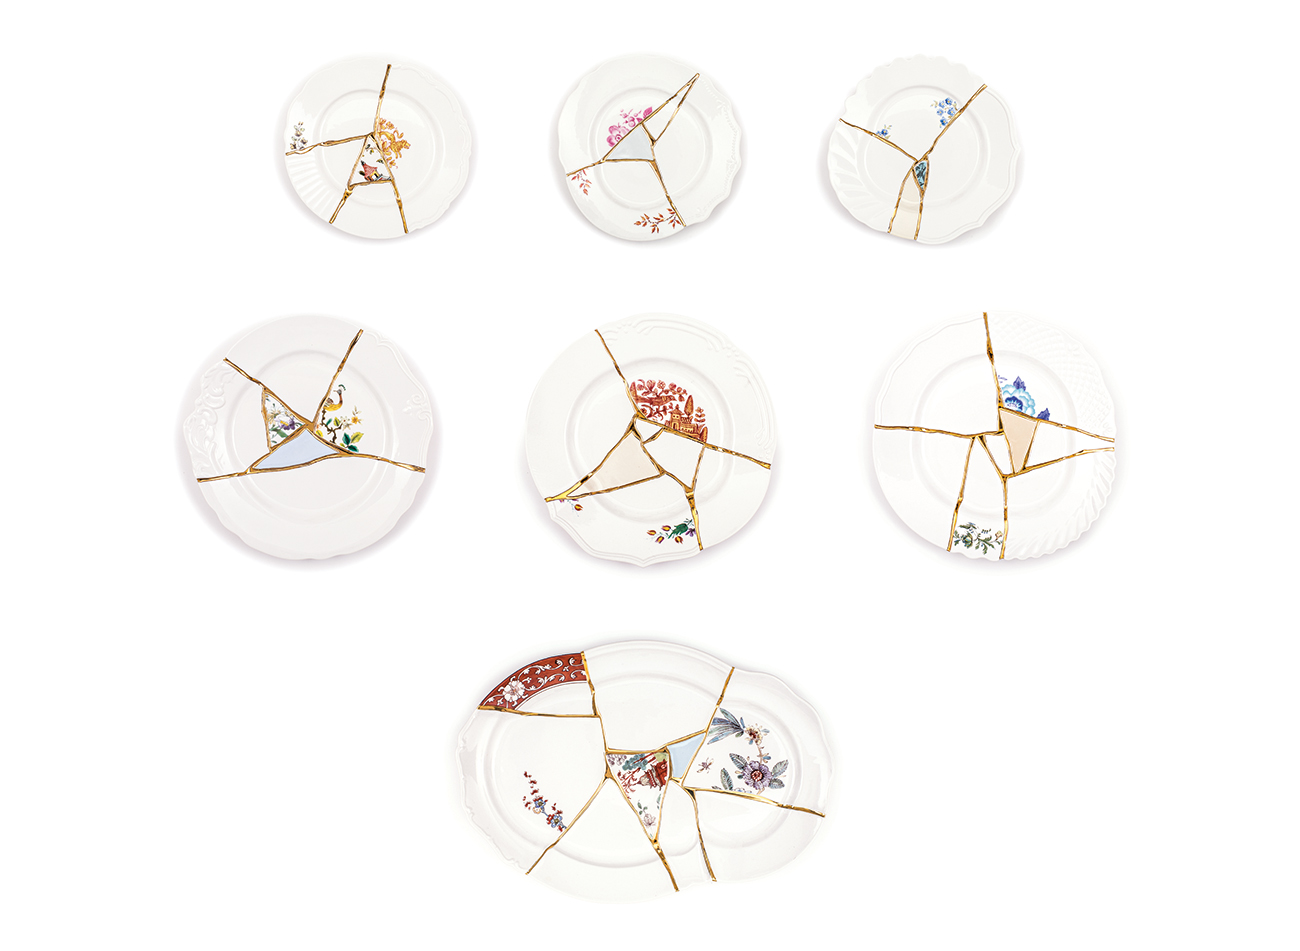 KINTSUGI plates and tray - Marcantonio design